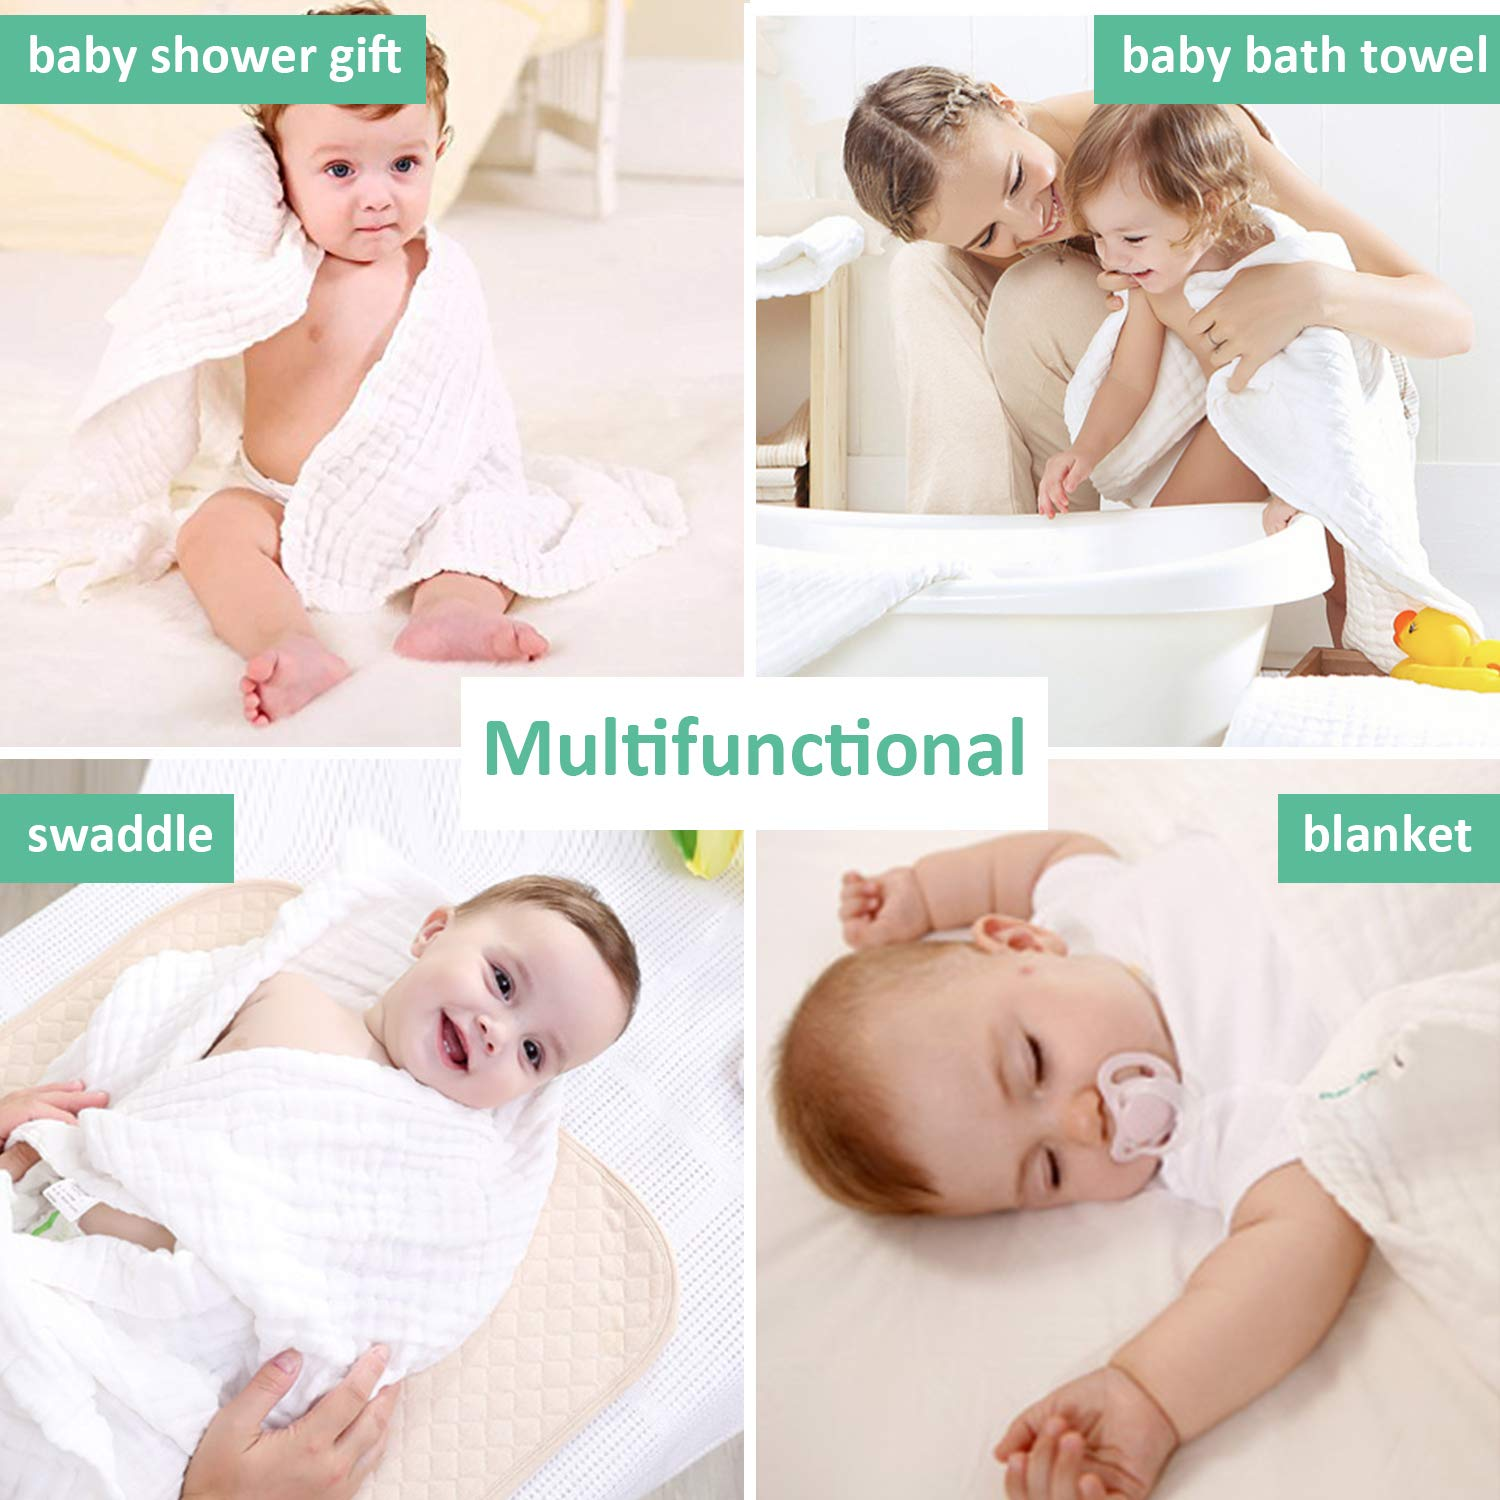 for Boys and Girls Soft Thick and Absorbent Muslin Baby Towels Luxury Baby Shower Gift for Newborns Infants Toddlers /& Kids Umiin Set of 2 Baby Bath Towels Muslin Baby Blanket 41.5x 41.5